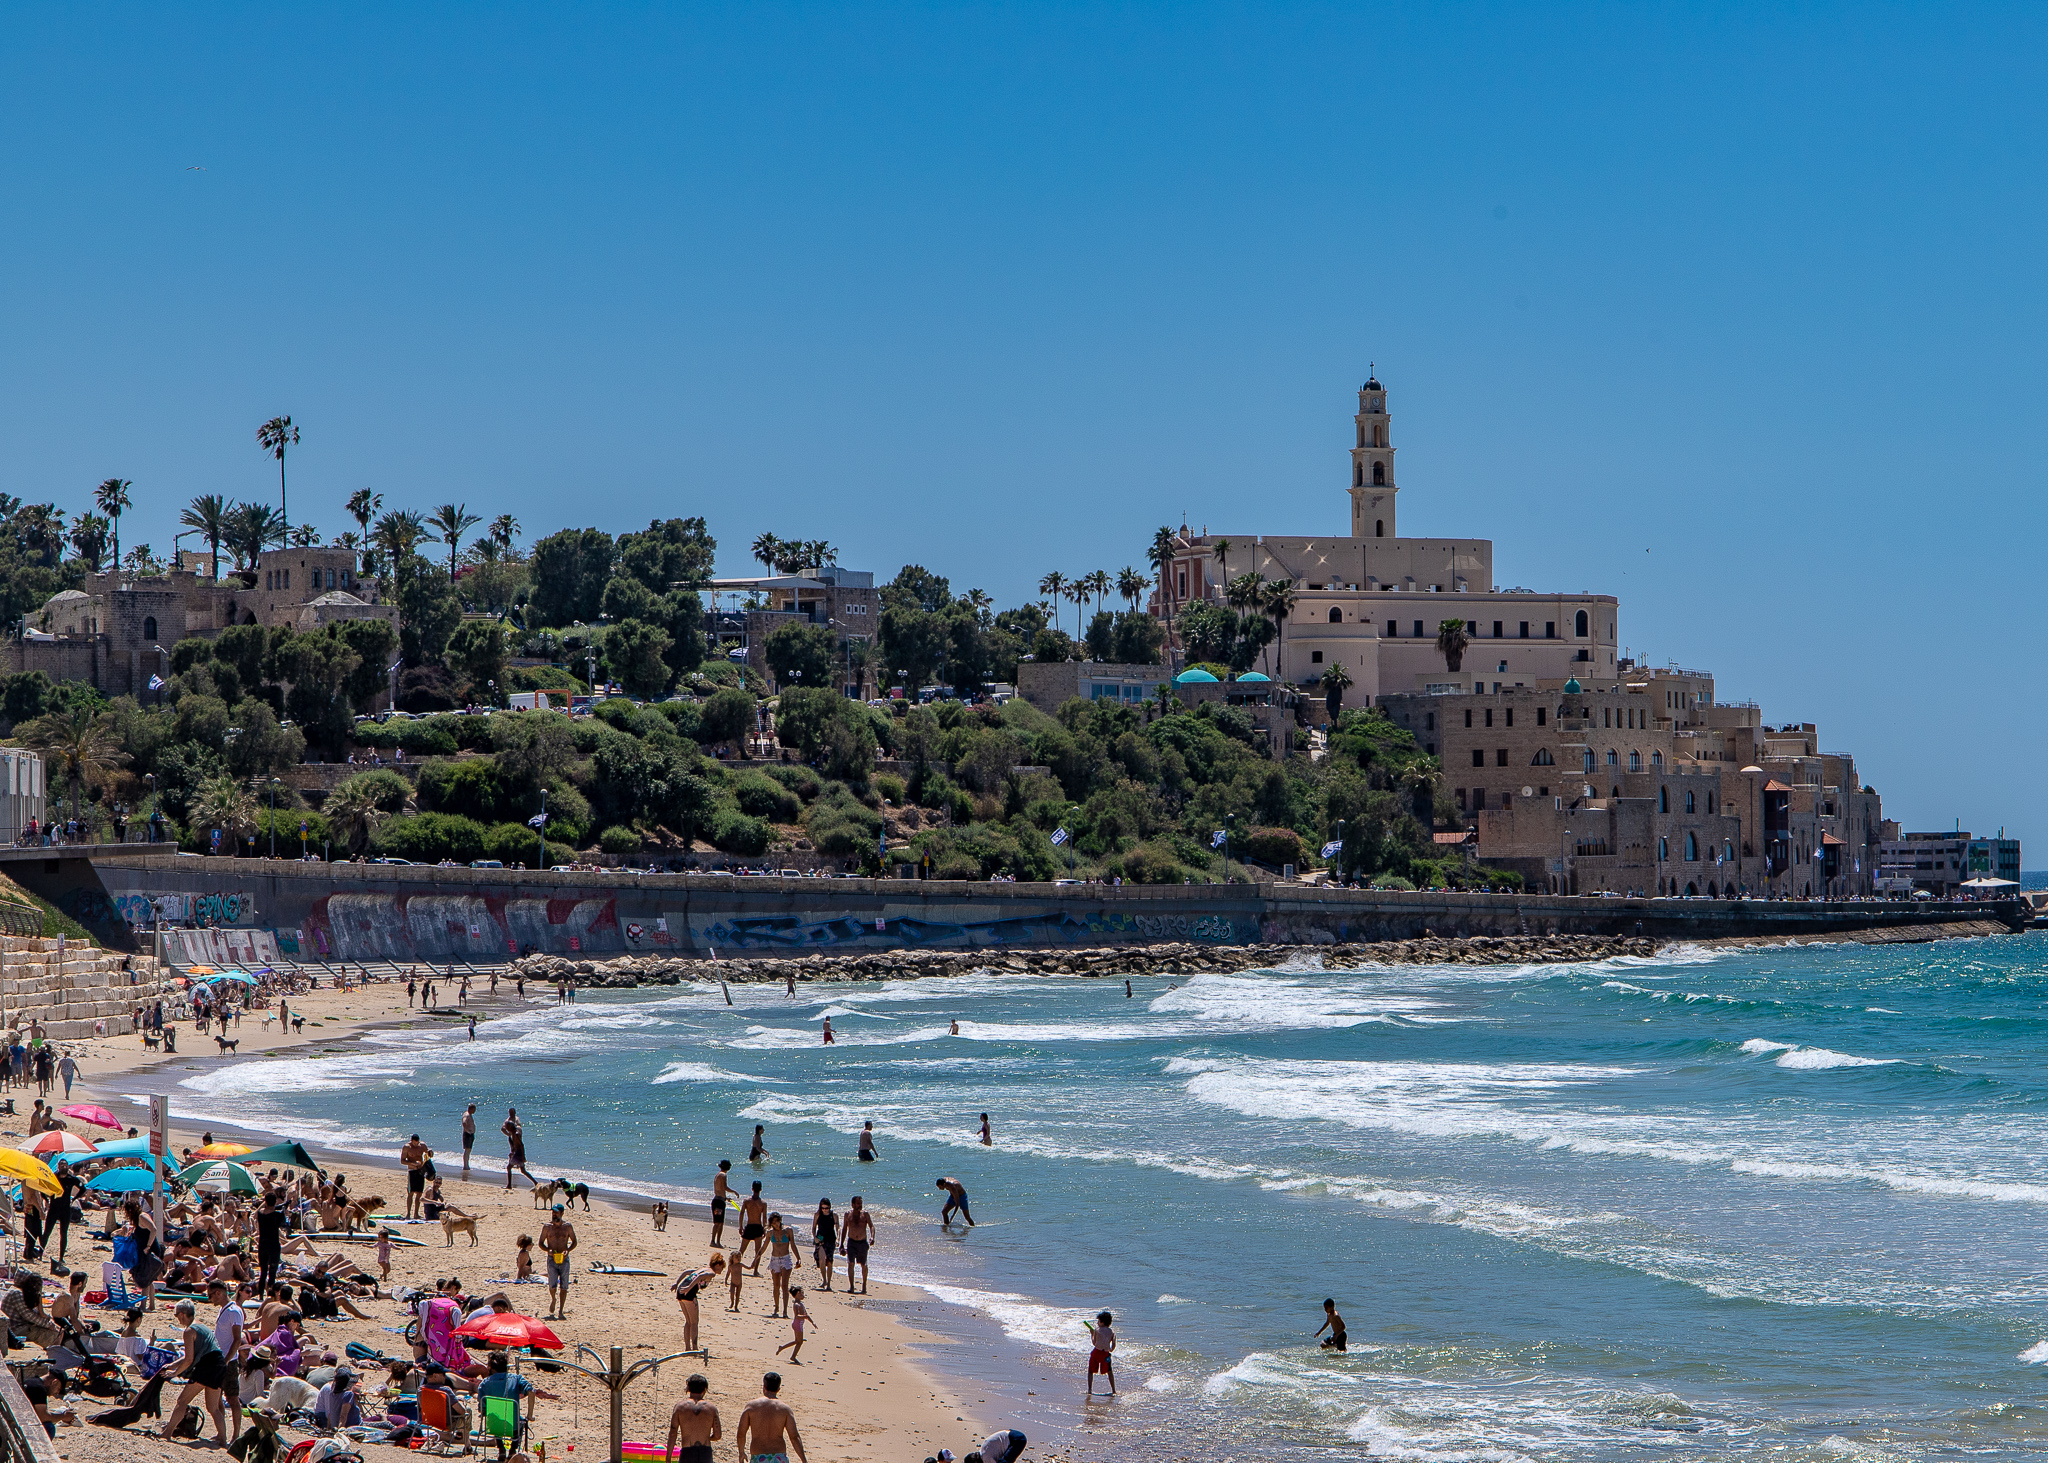 Enticing Jaffa as seen from the Tel Aviv Promenade